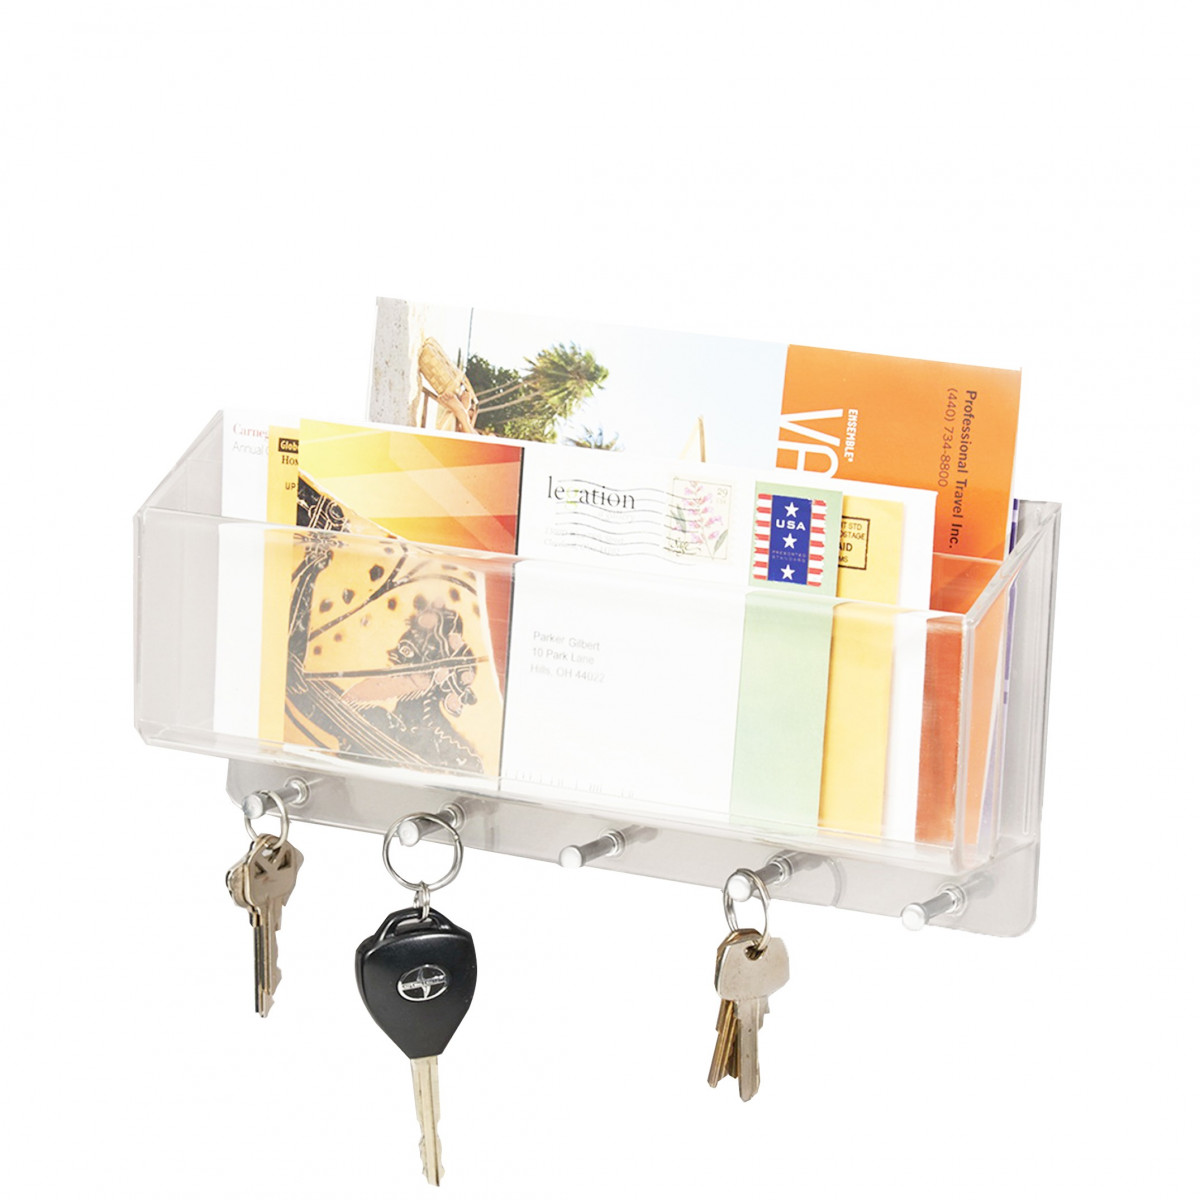 Porte courrier cl s mural rangement entr e for Range courrier mural industriel